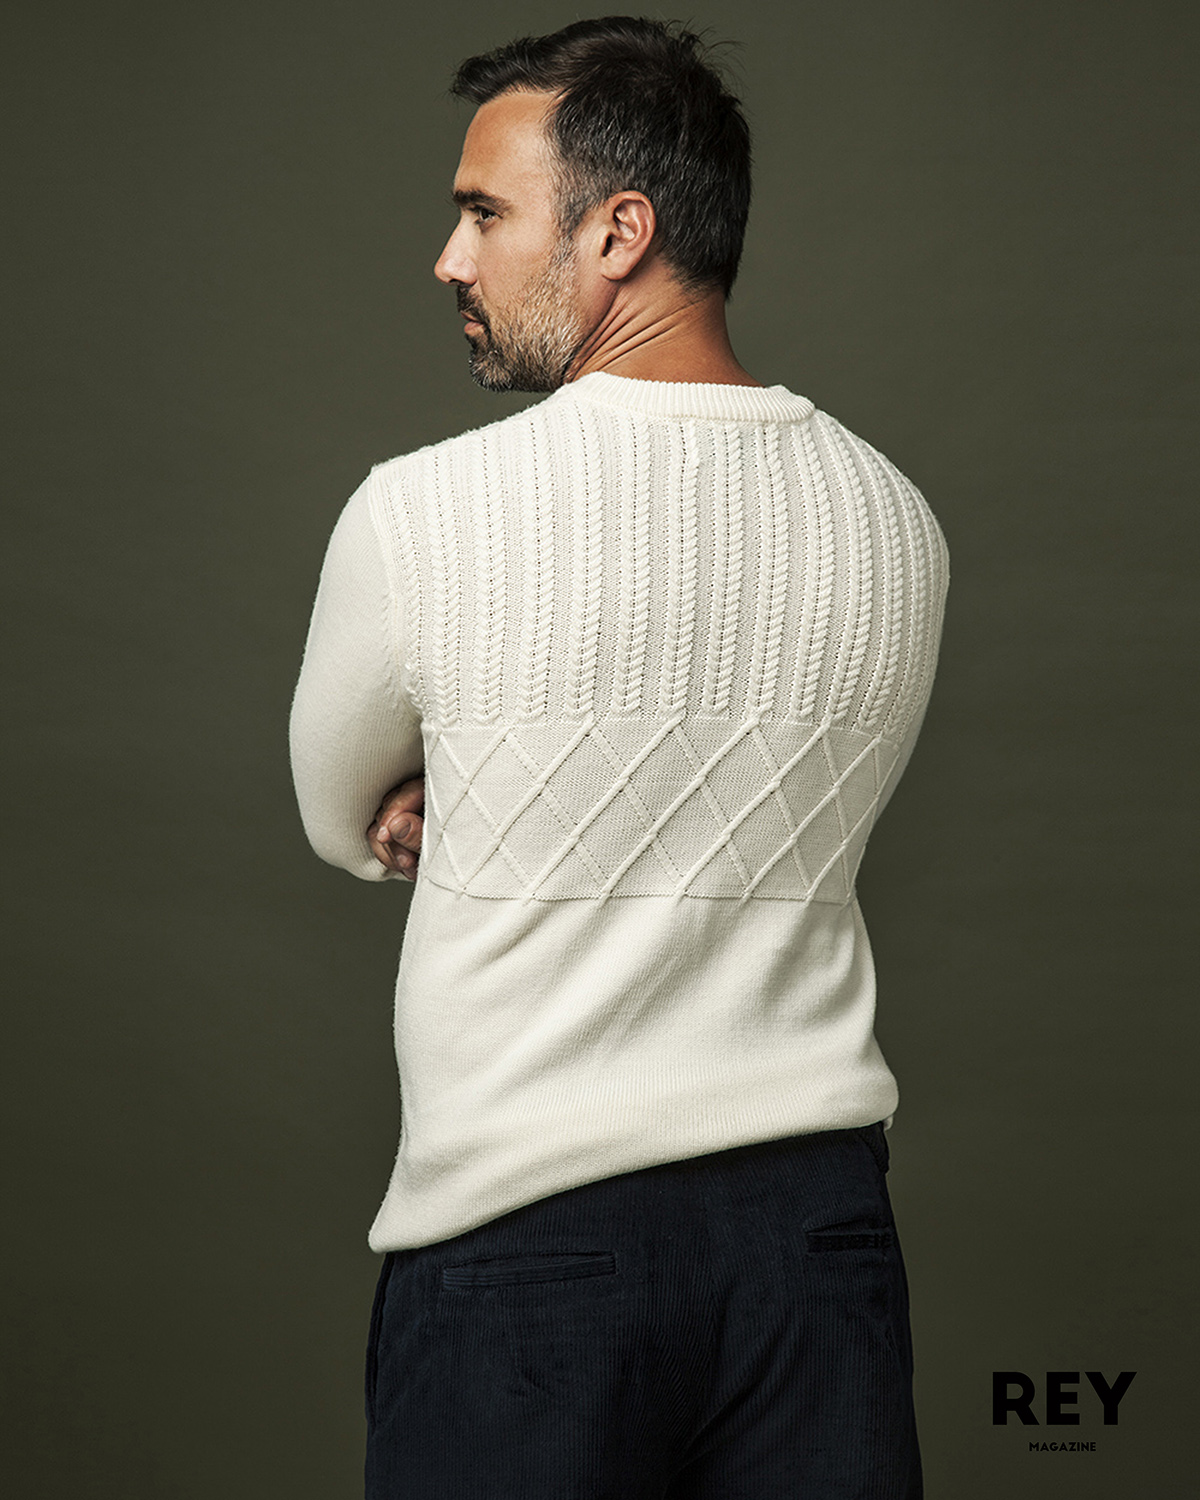 Jumper: Samsøe & Samsøe, Trousers: Scotch & Soda